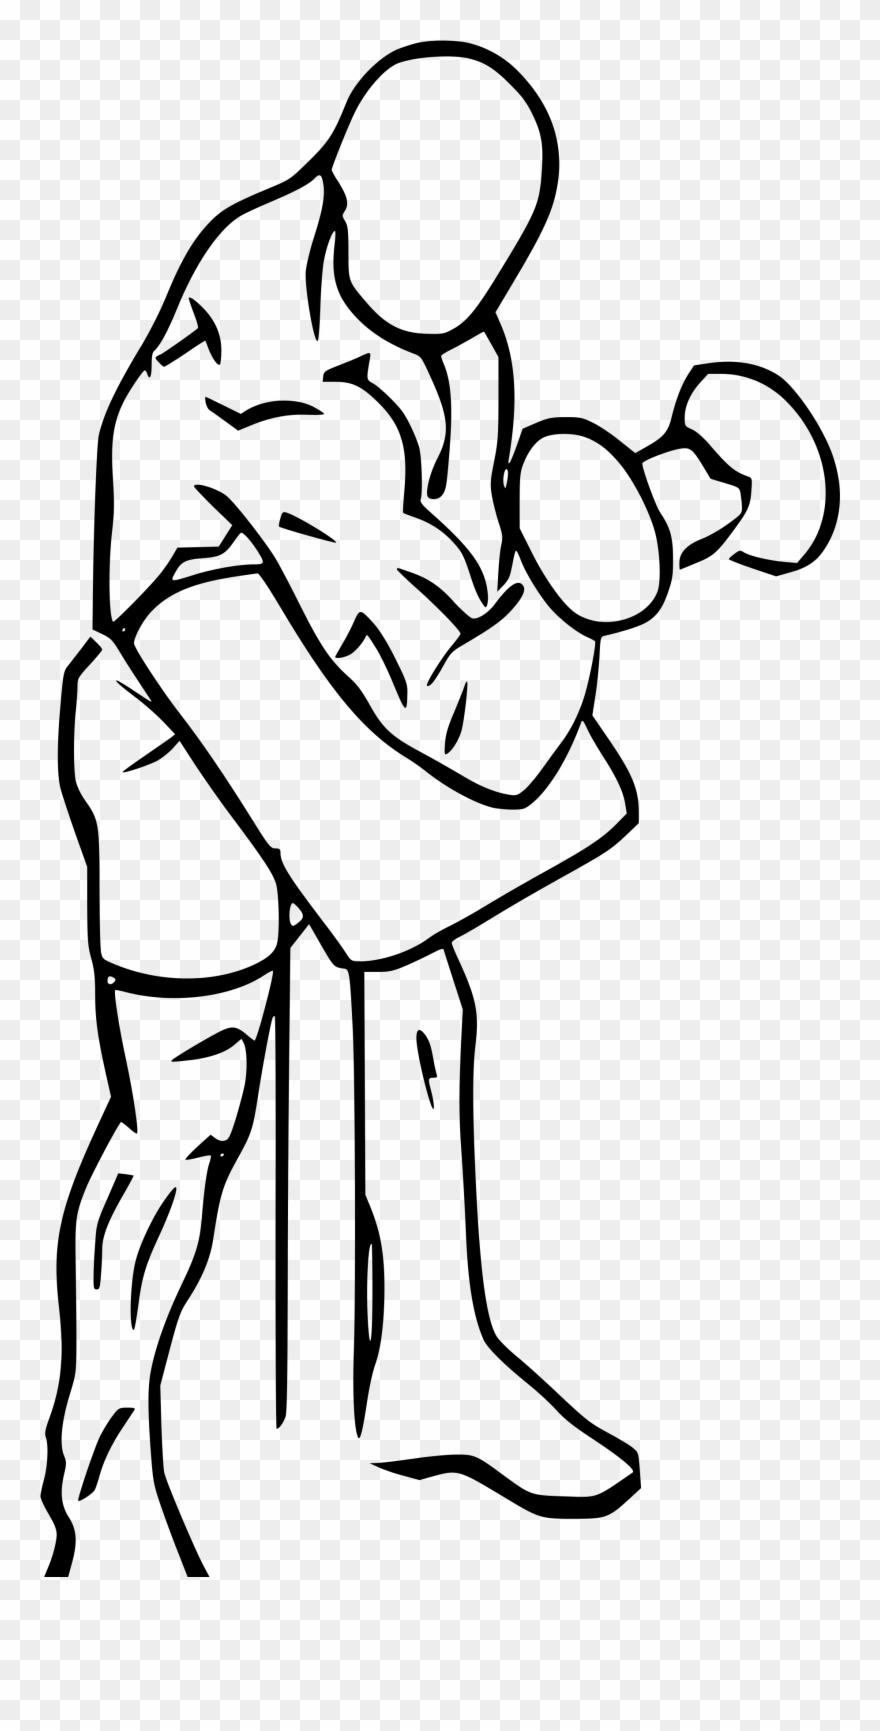 hight resolution of preacher drawing at getdrawings compound bicep exercises clipart